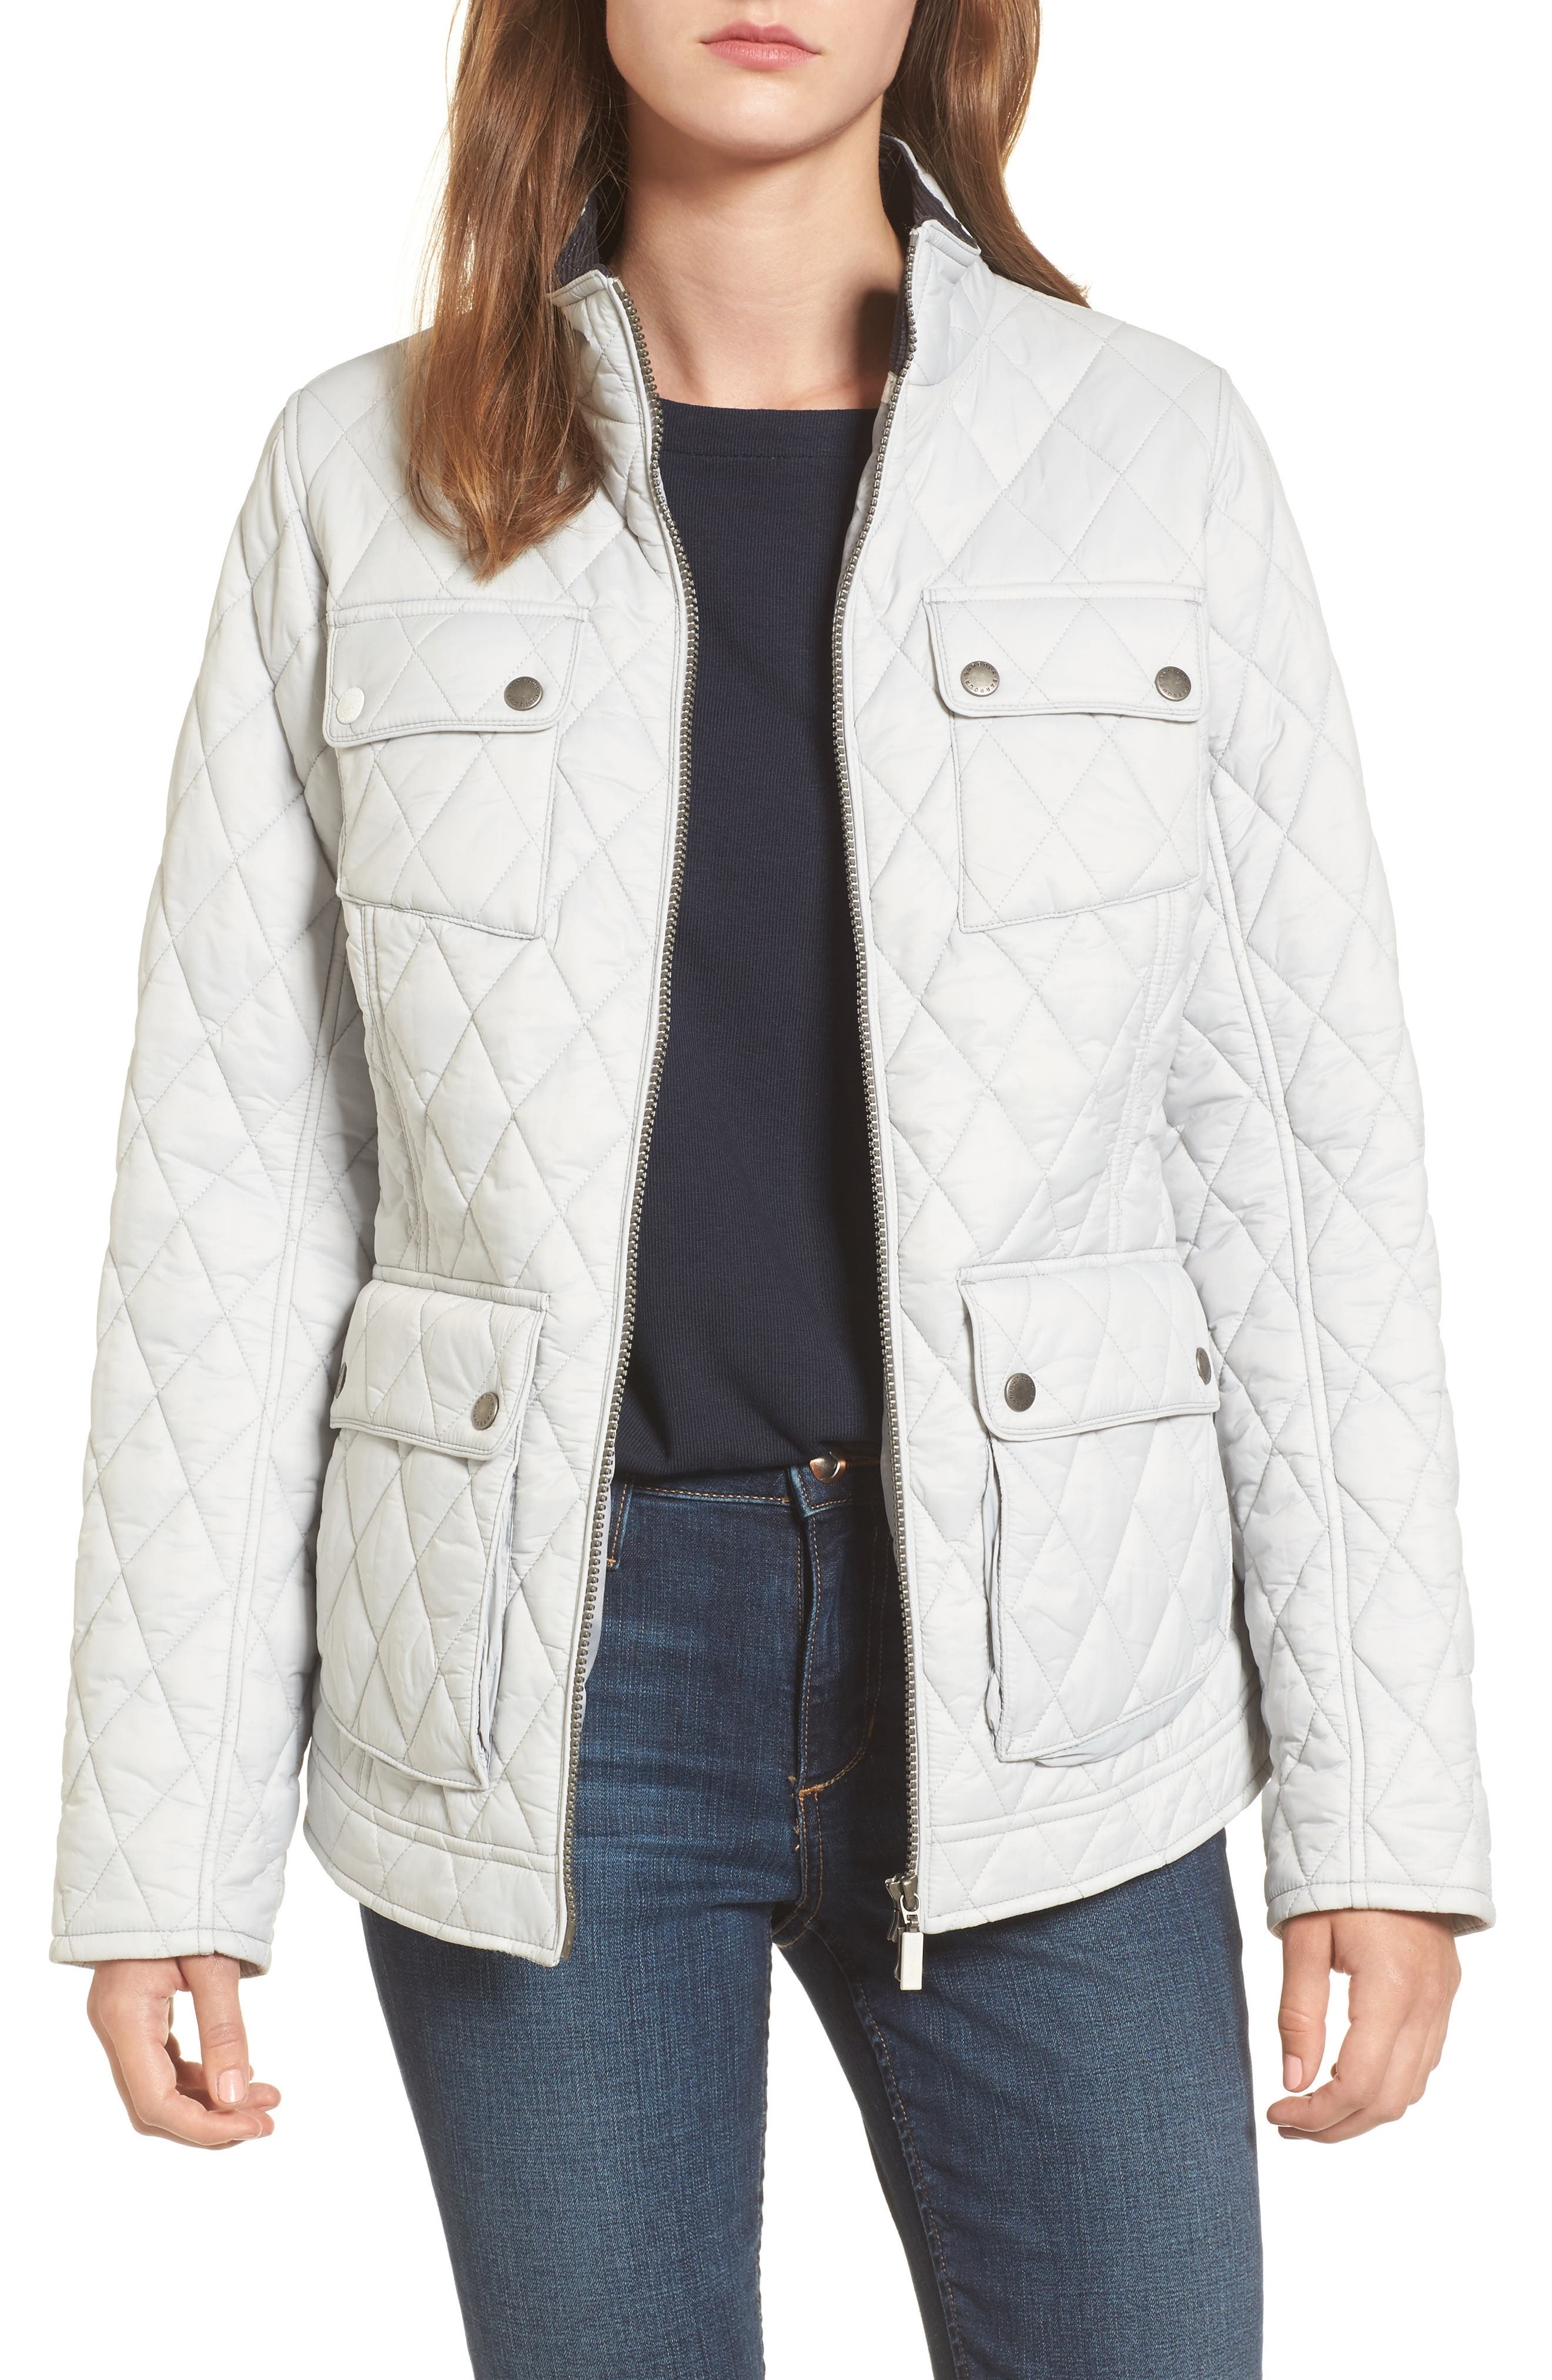 Dolostone Quilted Jacket,                         Main,                         color, Ice White